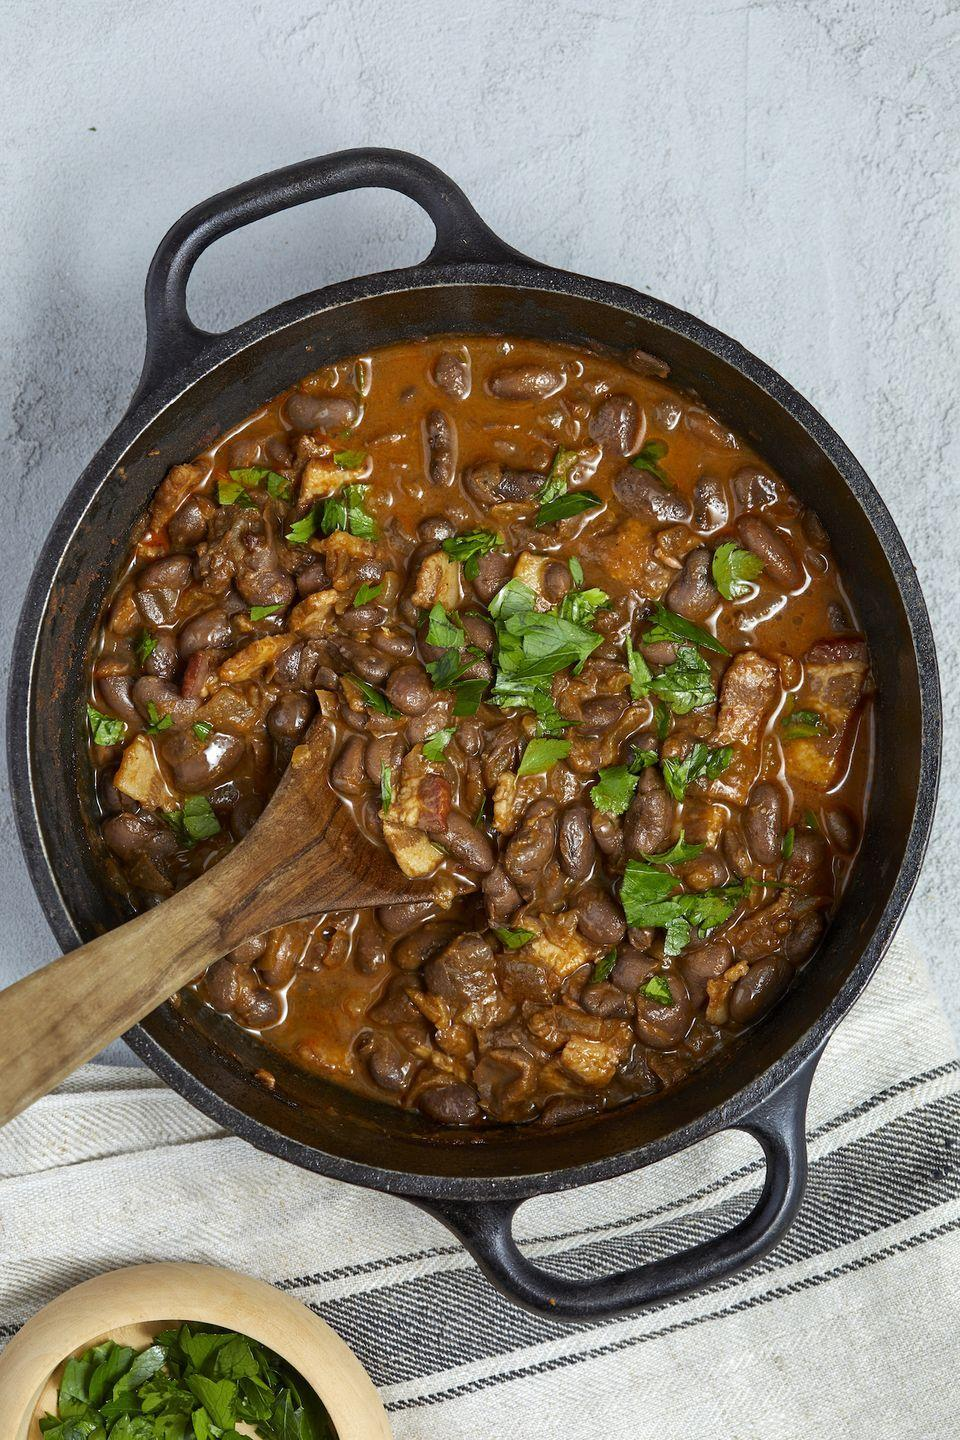 """<p>These are so deeply flavored. </p><p>Get the recipe from <a href=""""https://www.delish.com/cooking/recipe-ideas/a32293459/pinto-beans-recipe/"""" rel=""""nofollow noopener"""" target=""""_blank"""" data-ylk=""""slk:Delish"""" class=""""link rapid-noclick-resp"""">Delish</a>.<br></p>"""